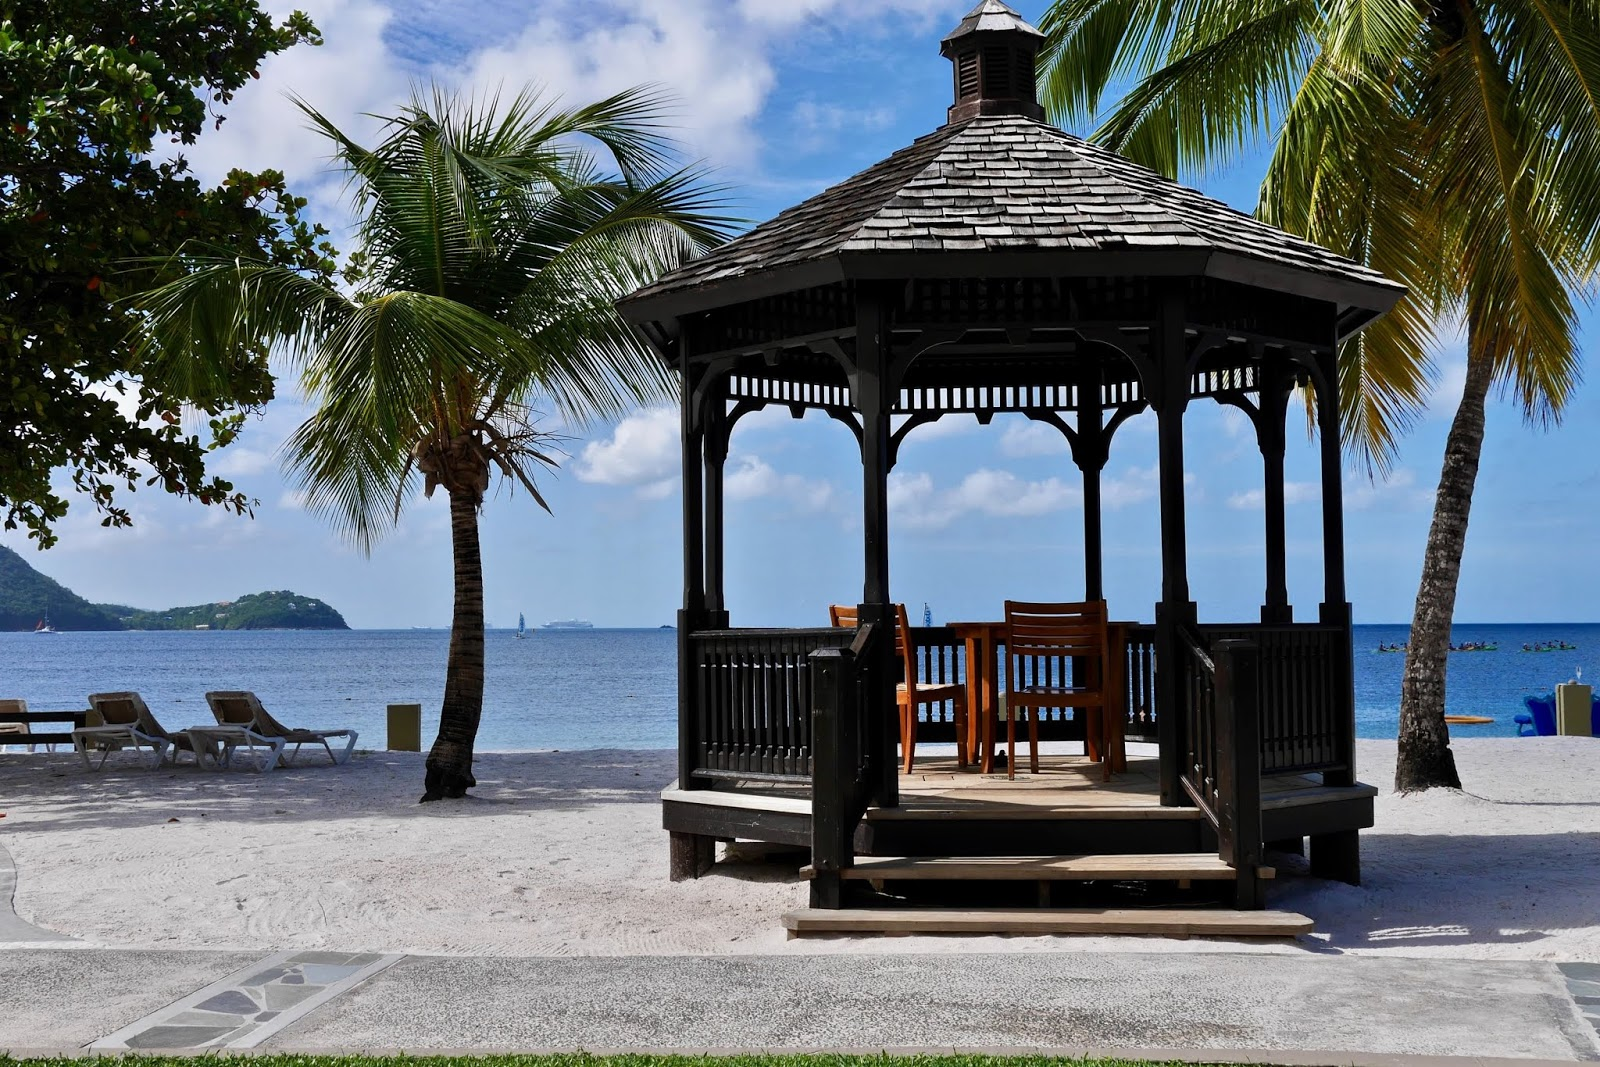 The Sandals Grande St Lucia Beach, Sandals Grande St Lucia Review